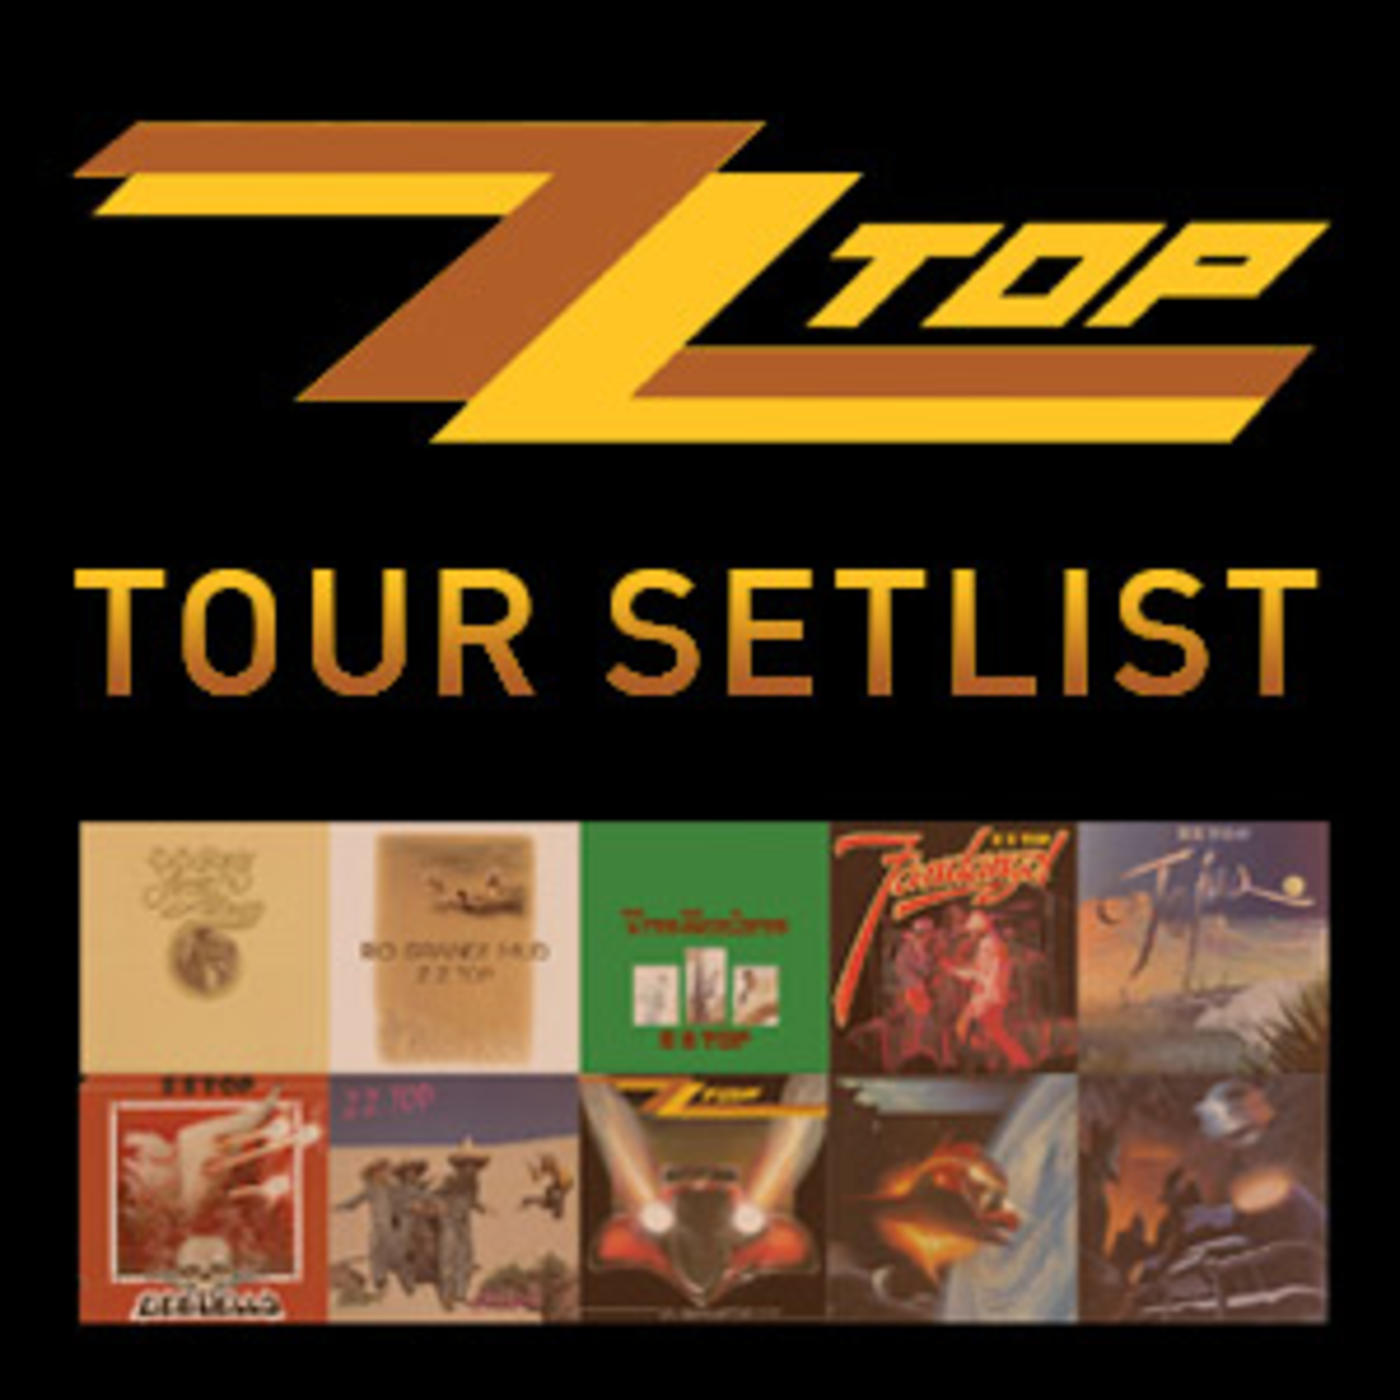 ZZ Top Tour Playlist